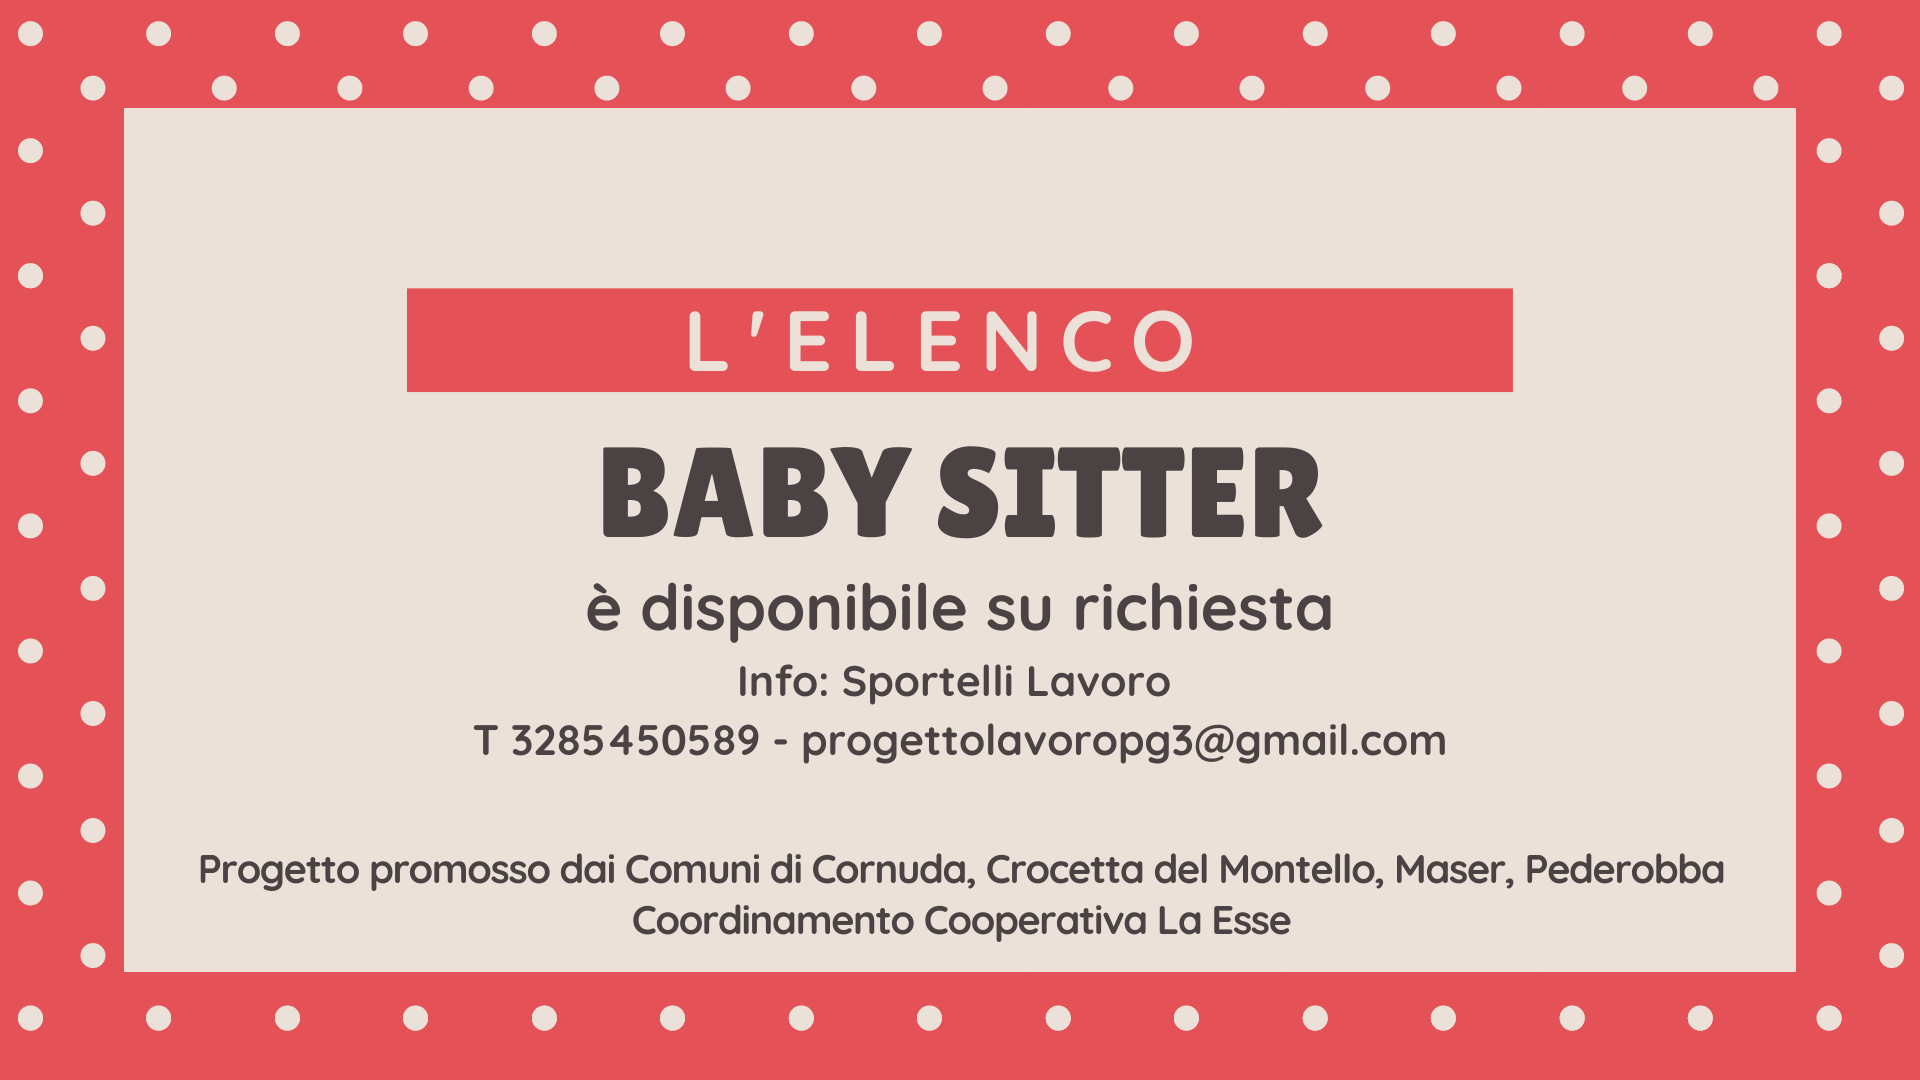 èprogetto baby sitter